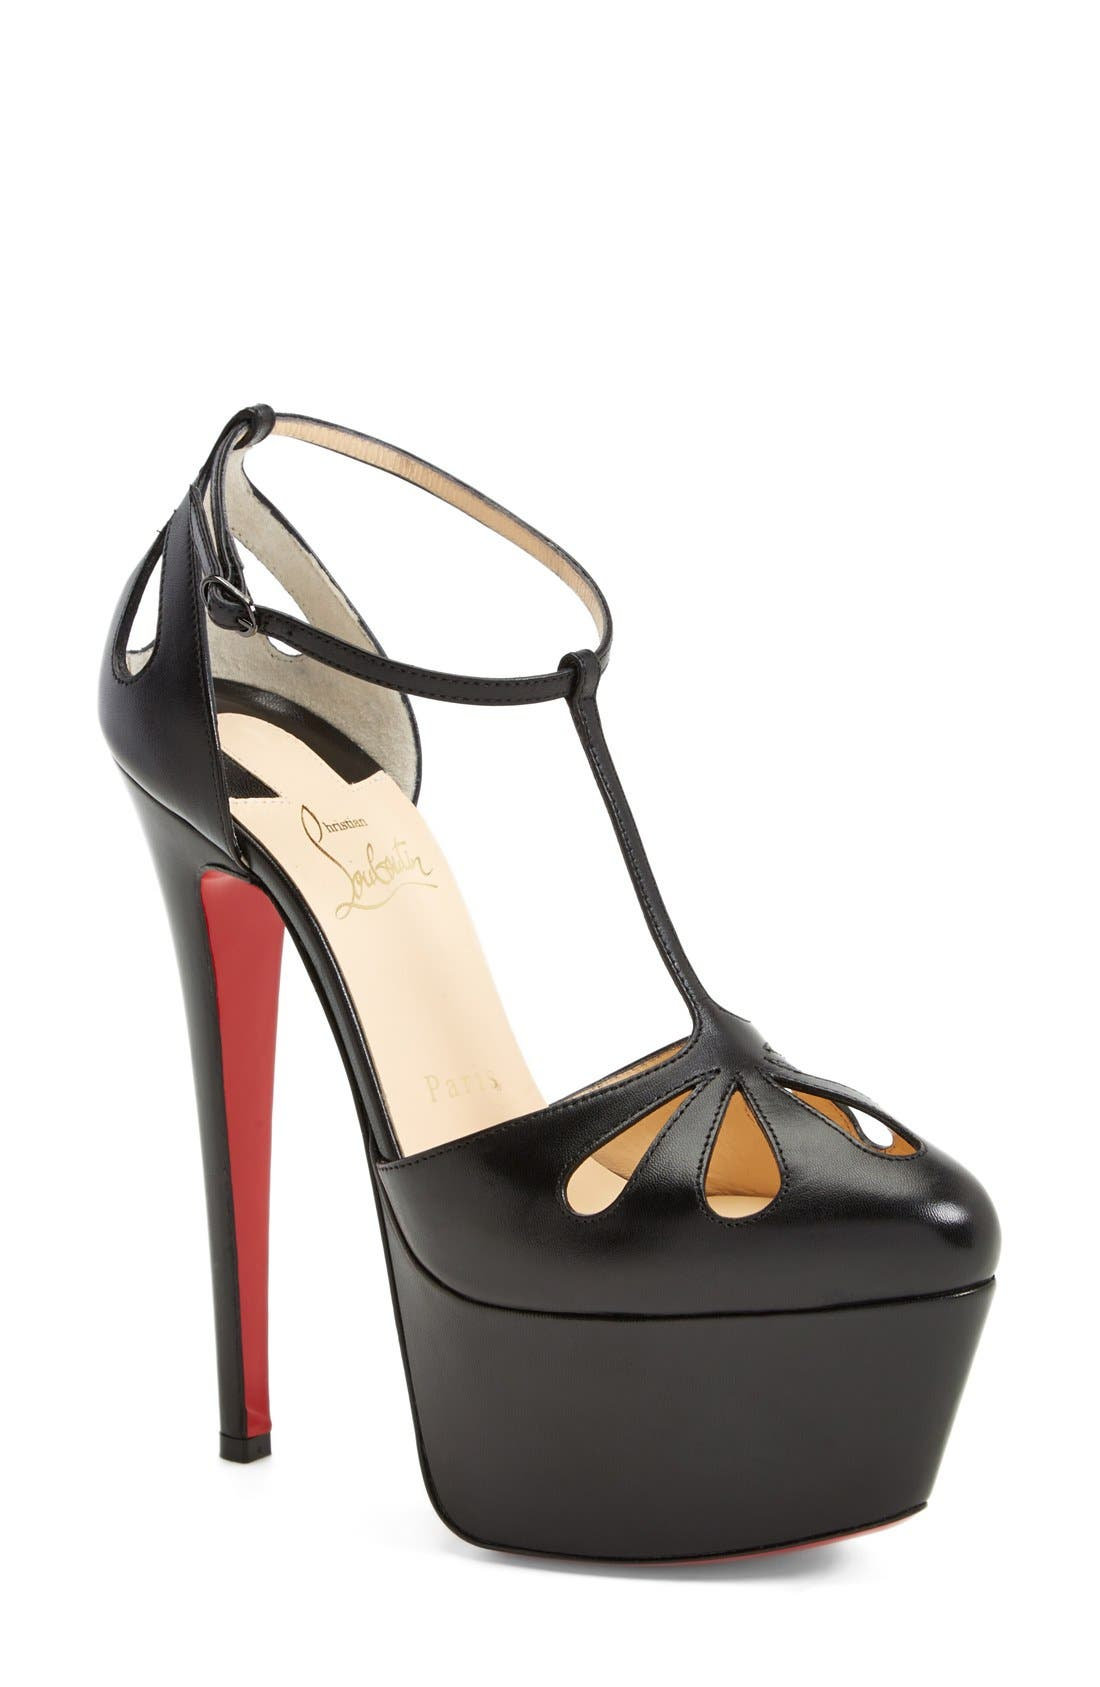 Alternate Image 1 Selected - Christian Louboutin T-Strap Cutout Pump